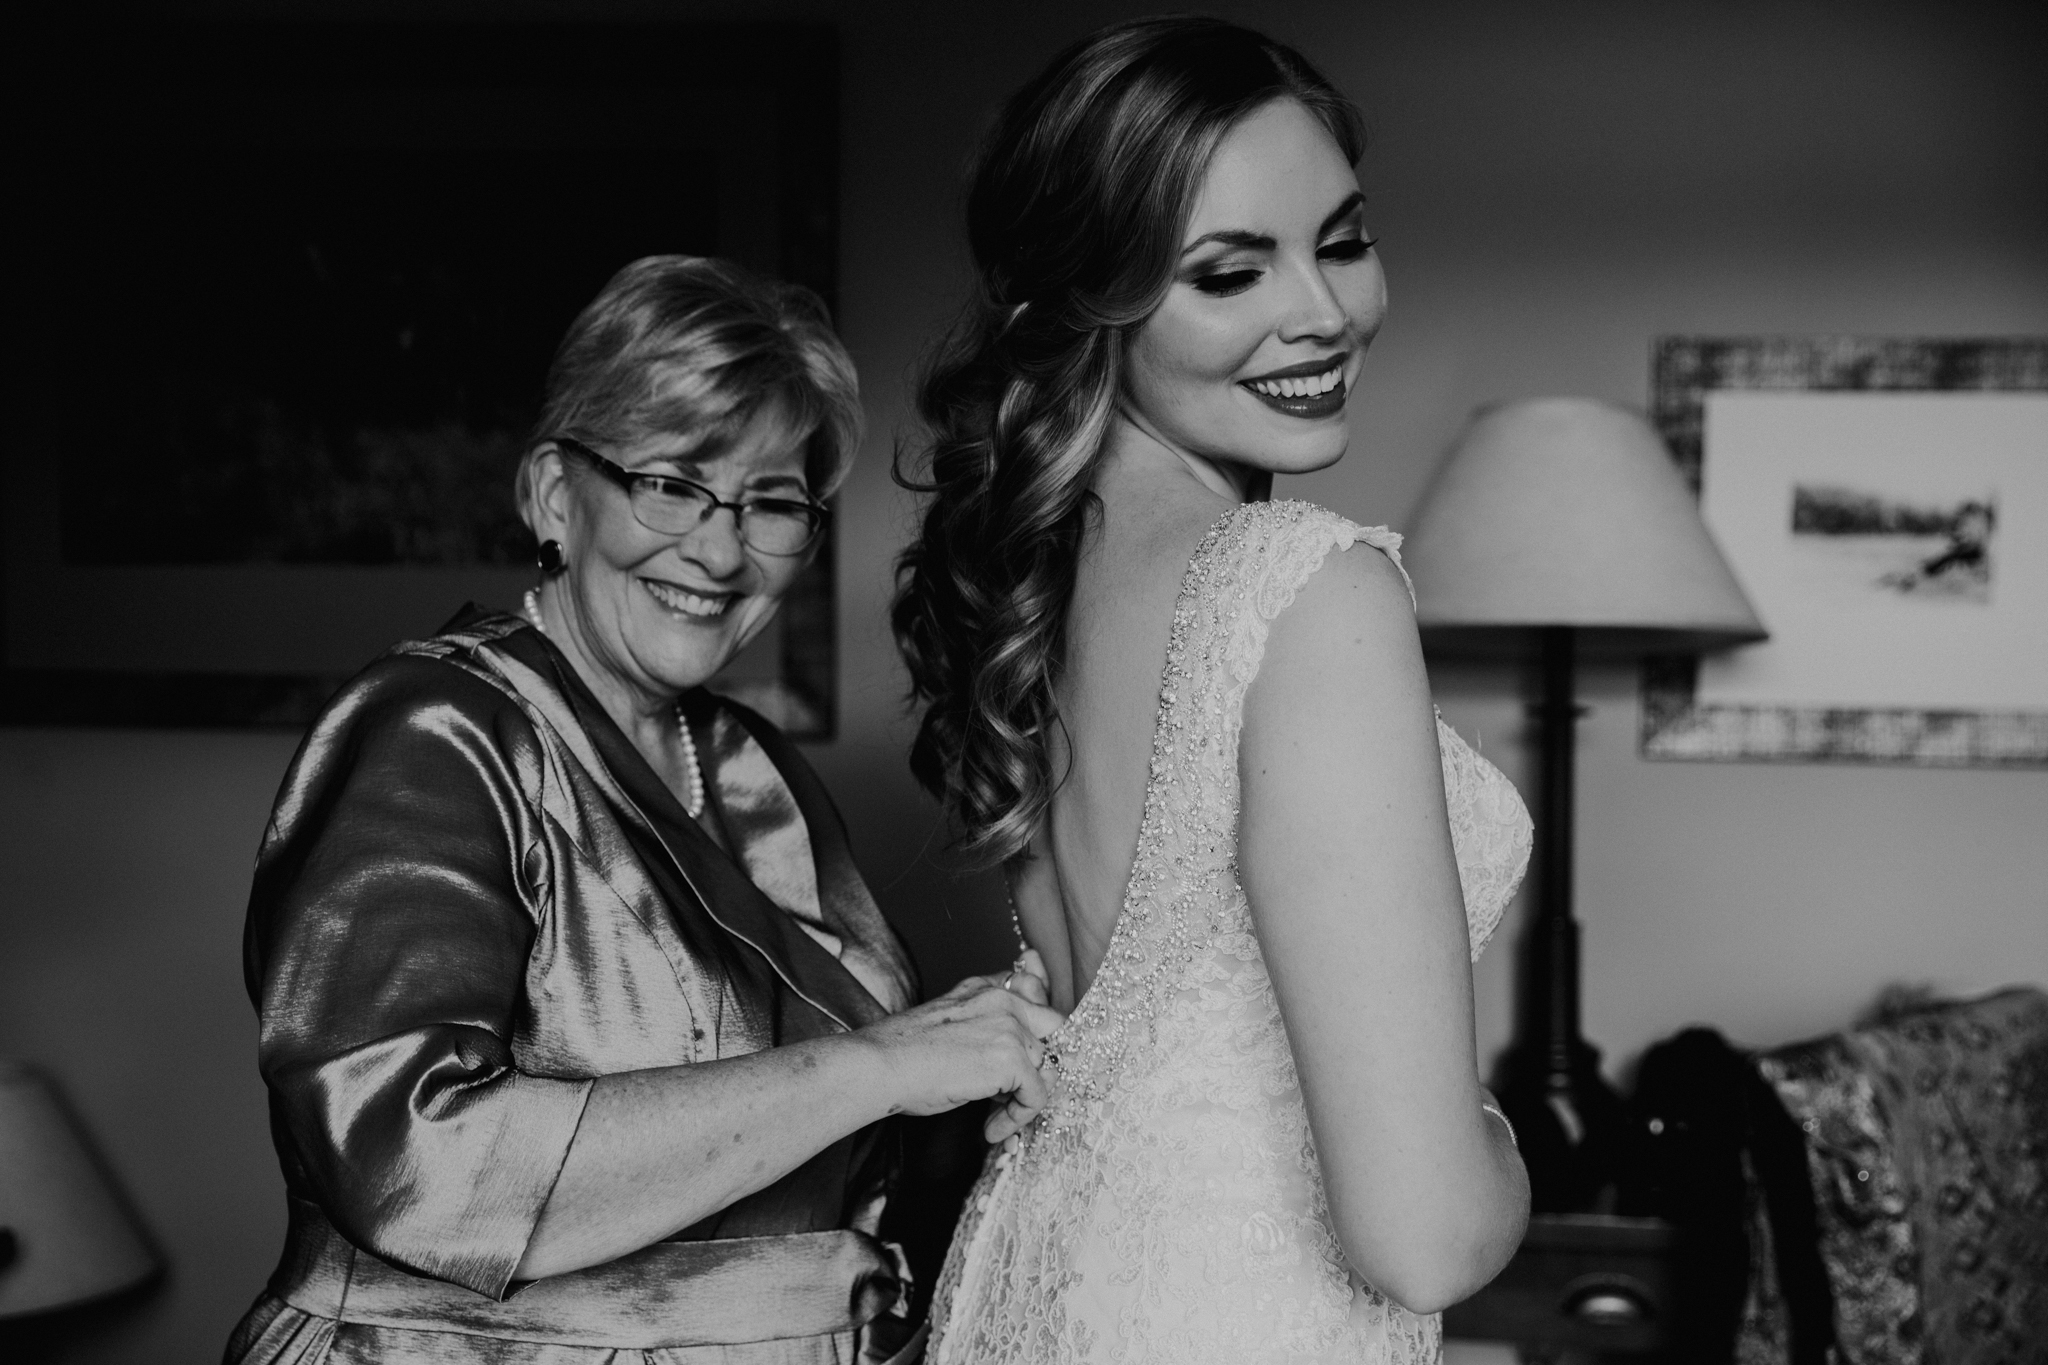 Mother of the bride helping bride put on wedding dress documentary wedding photographer MN